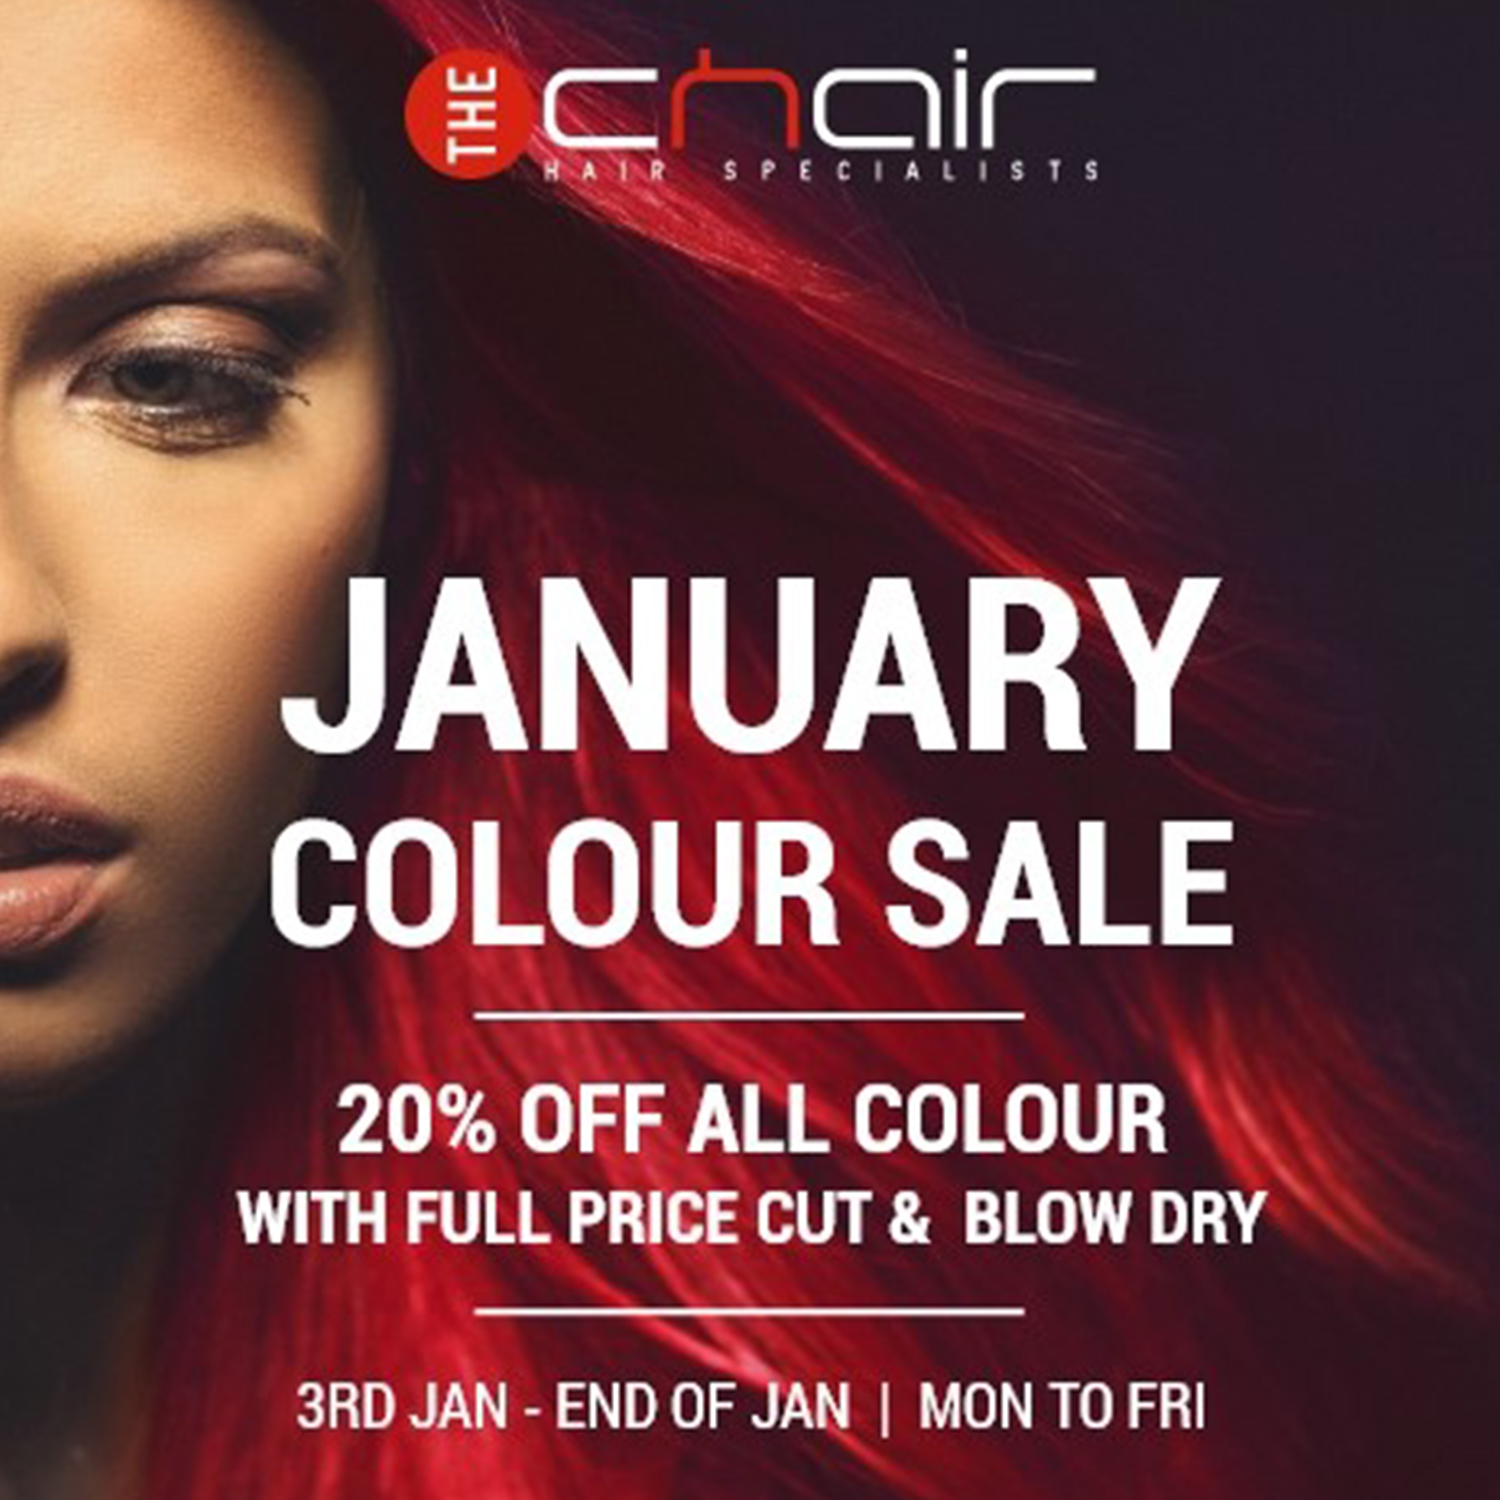 January-Colour-Sale-Offer